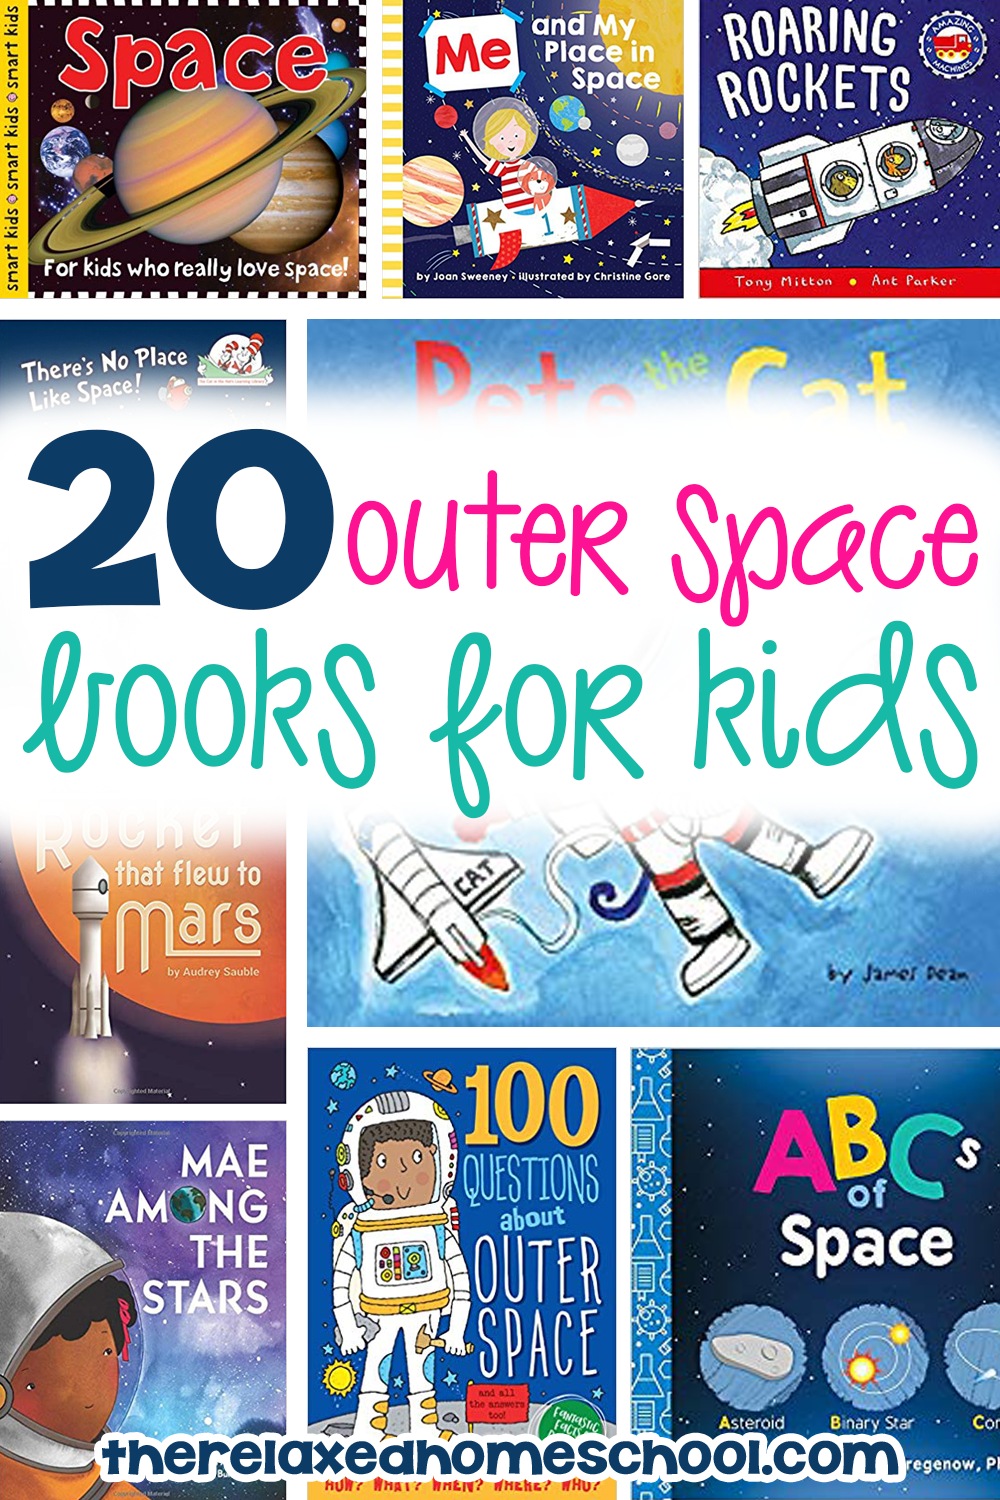 20 top space books for kids! Are you studying space? Does your child love space and space activities? If so then this book list is for you!